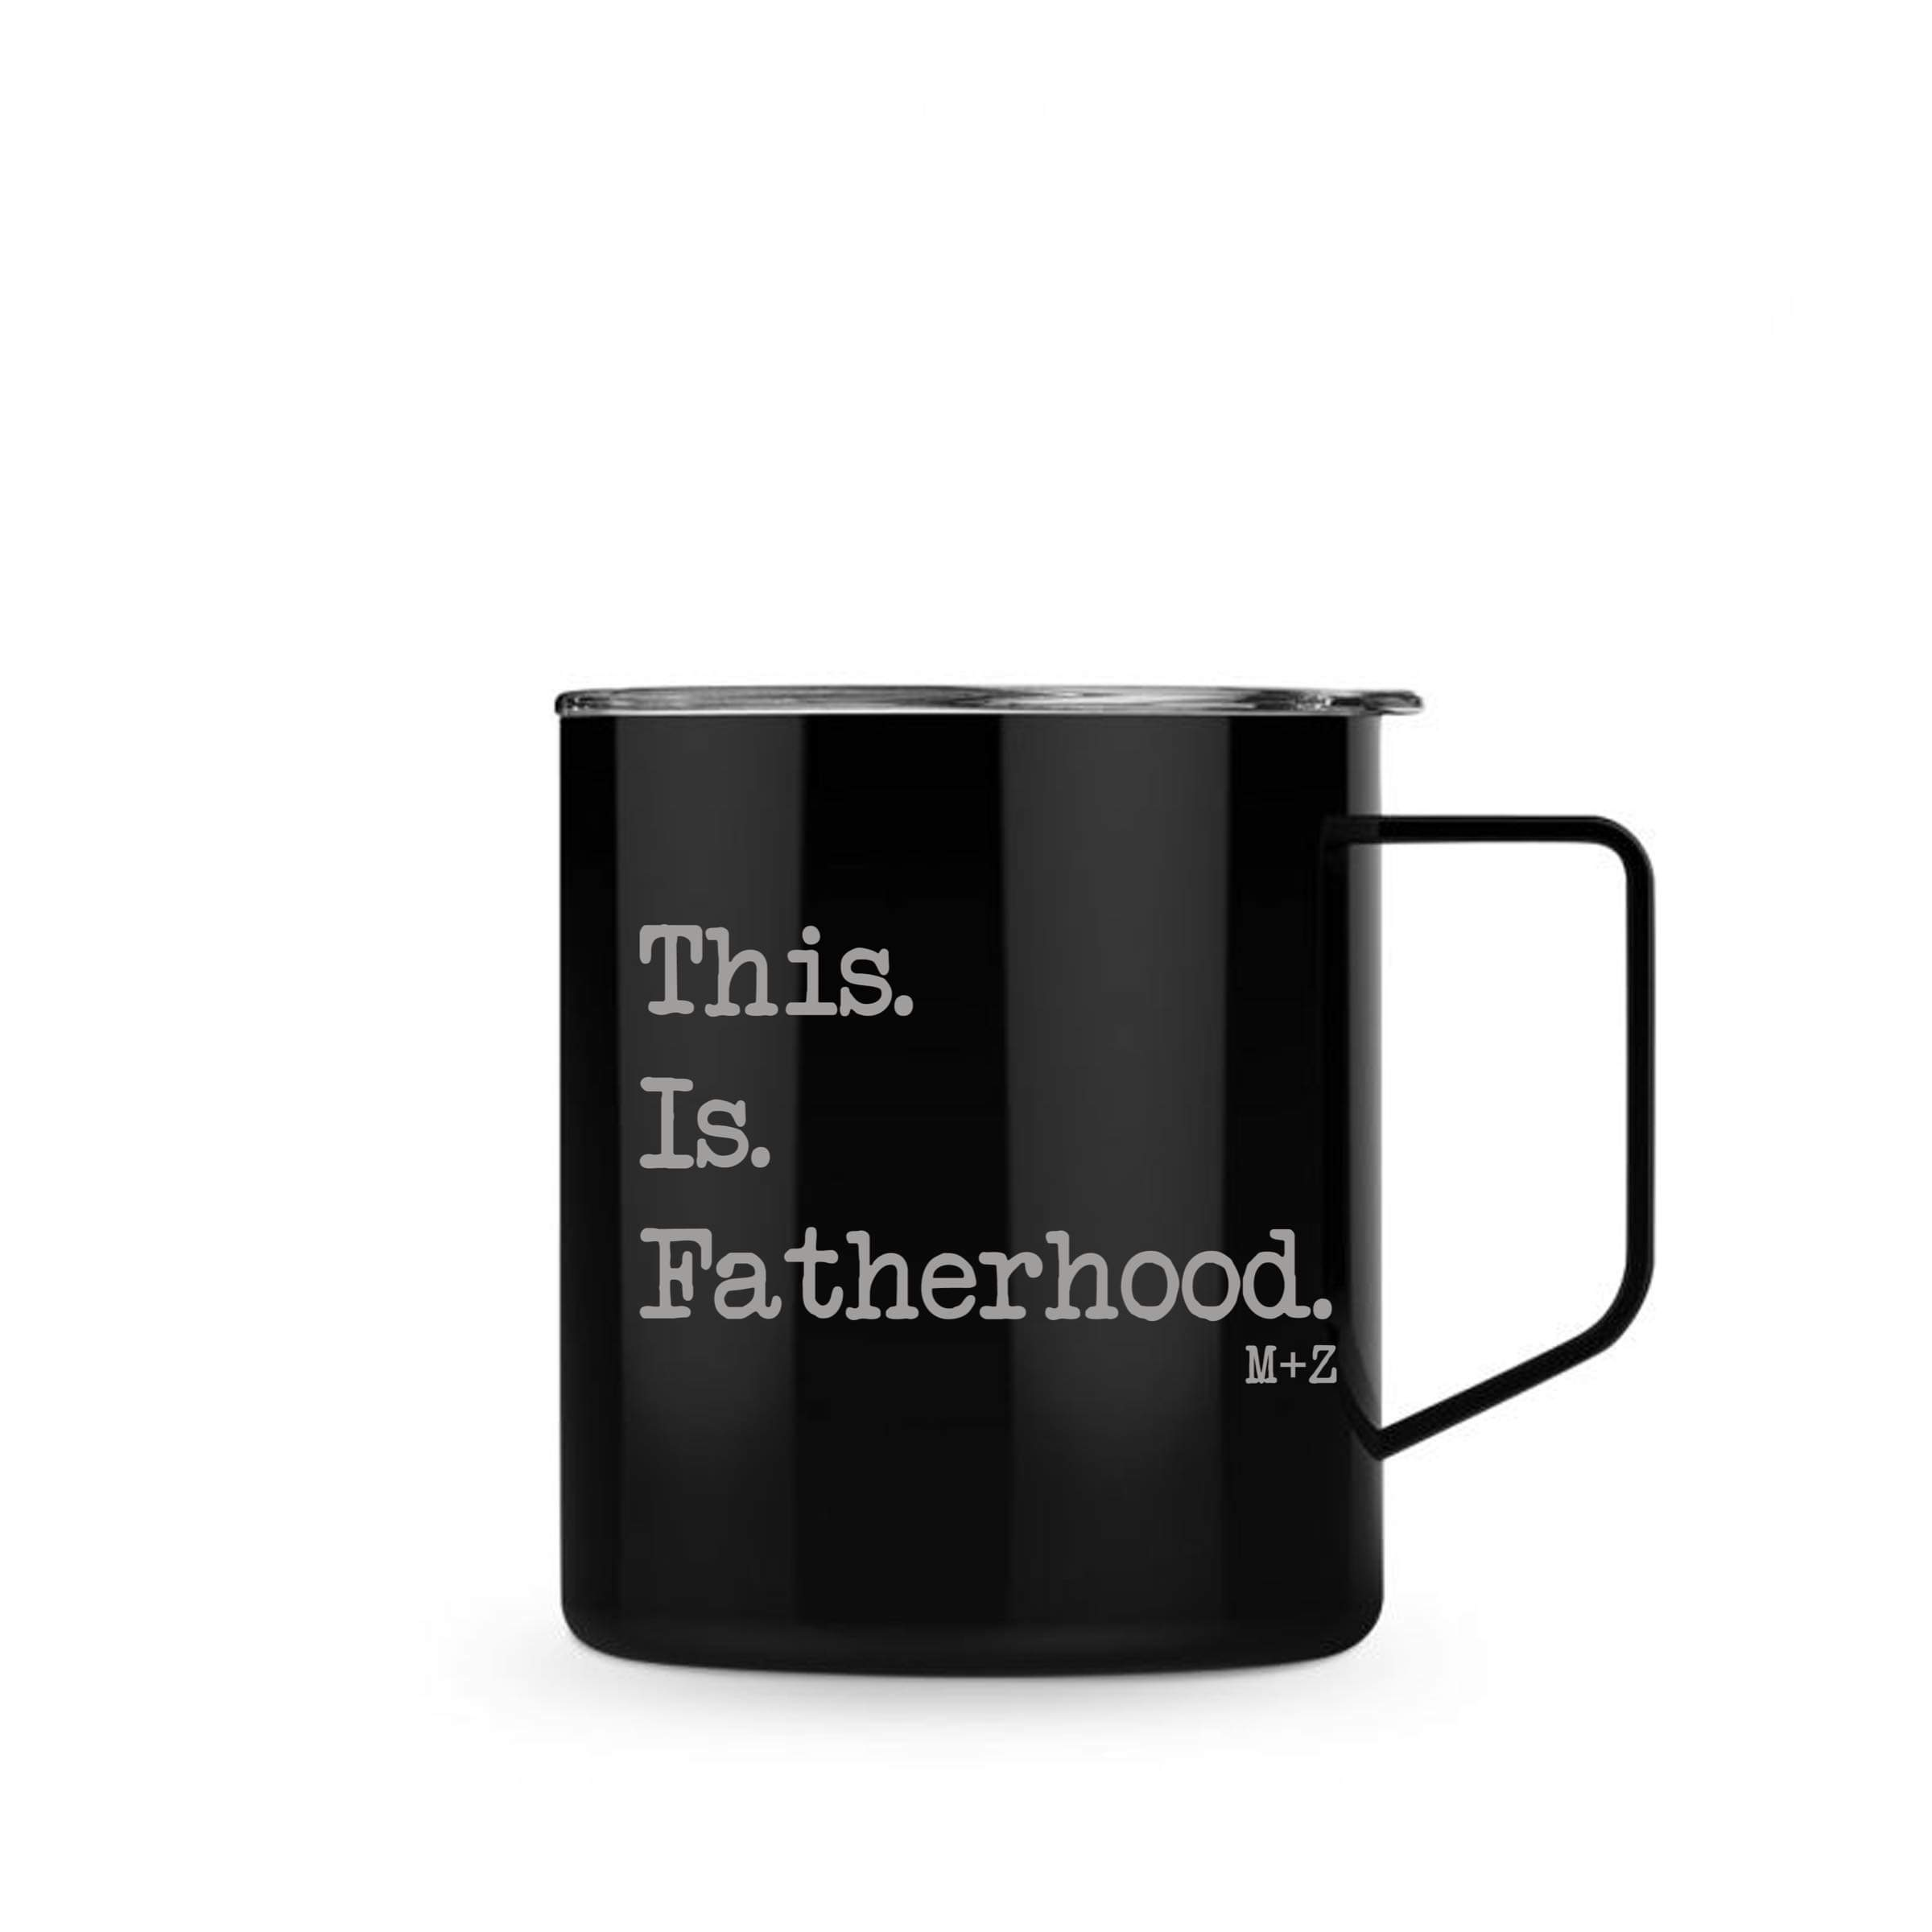 This. Is. Fatherhood. Mug/Cup